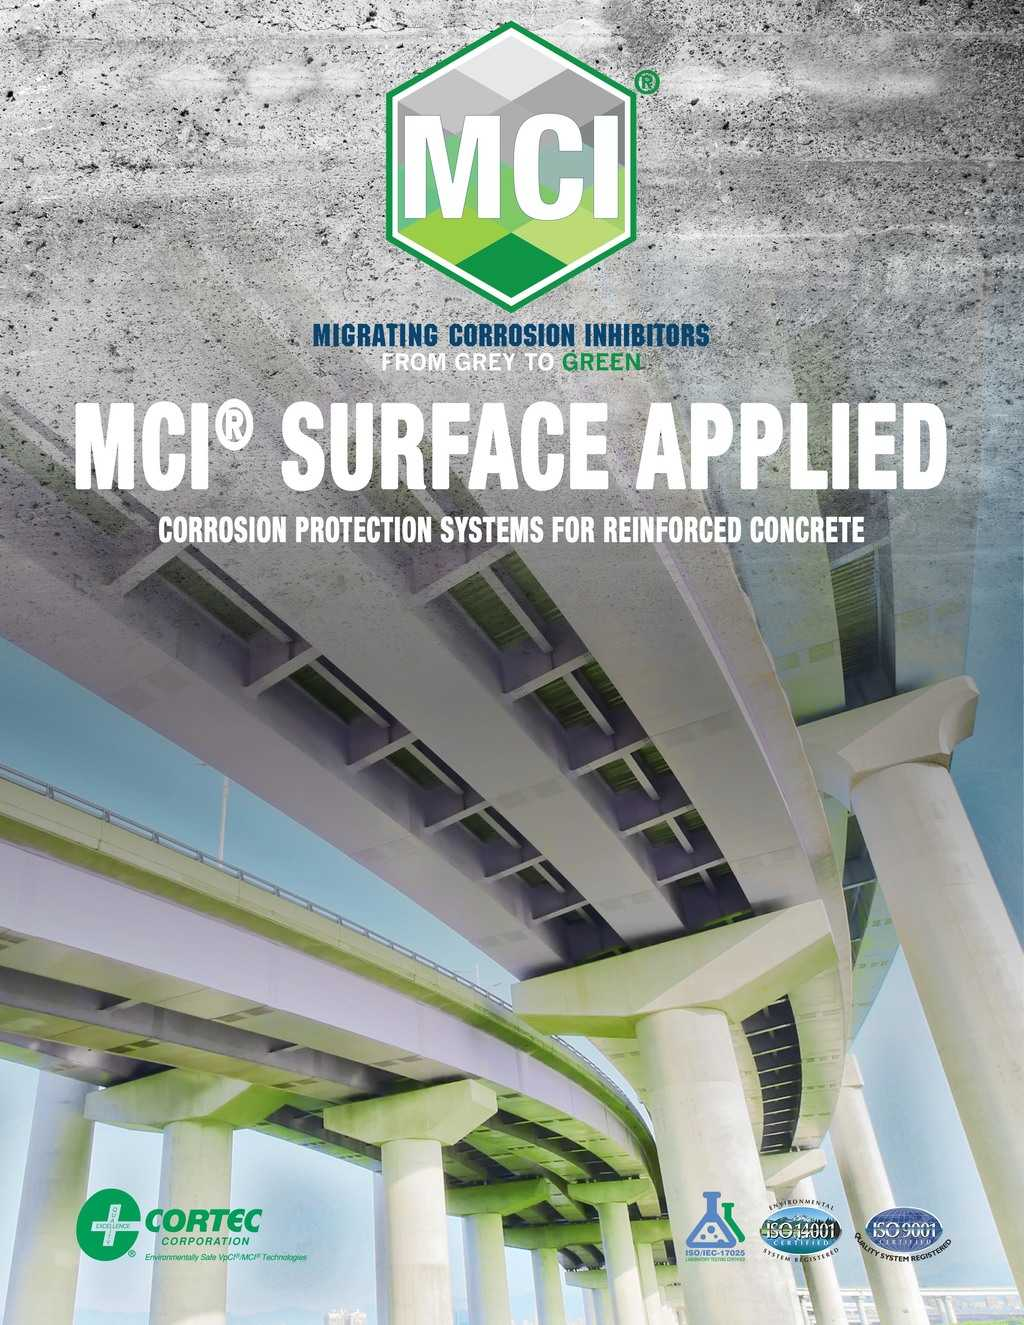 surface treatment brochure showing mci products